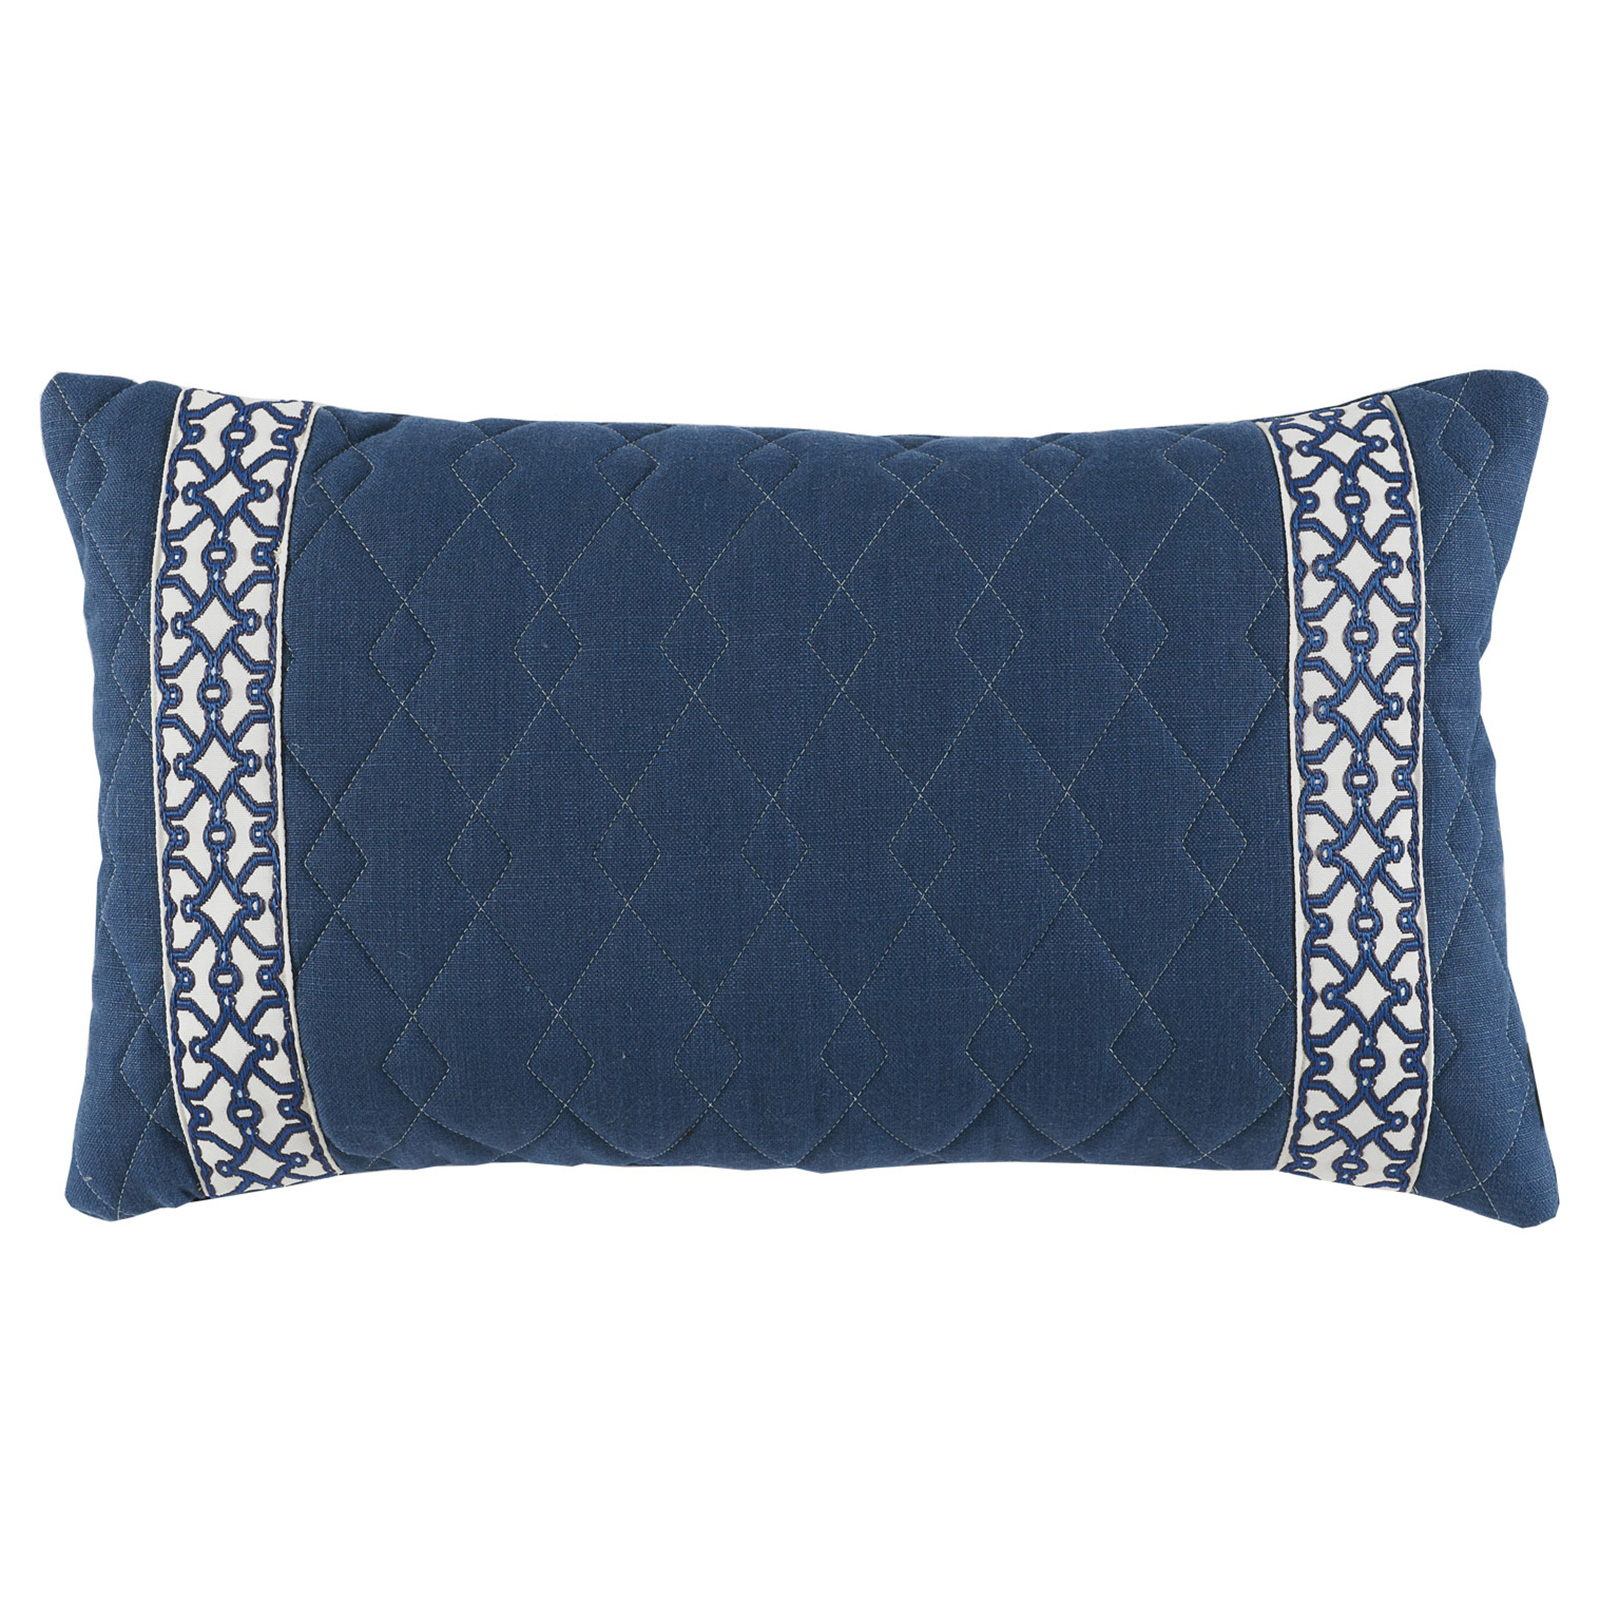 Dori Modern Classic Diamond Quilt Navy Trim Pillow - 13x22